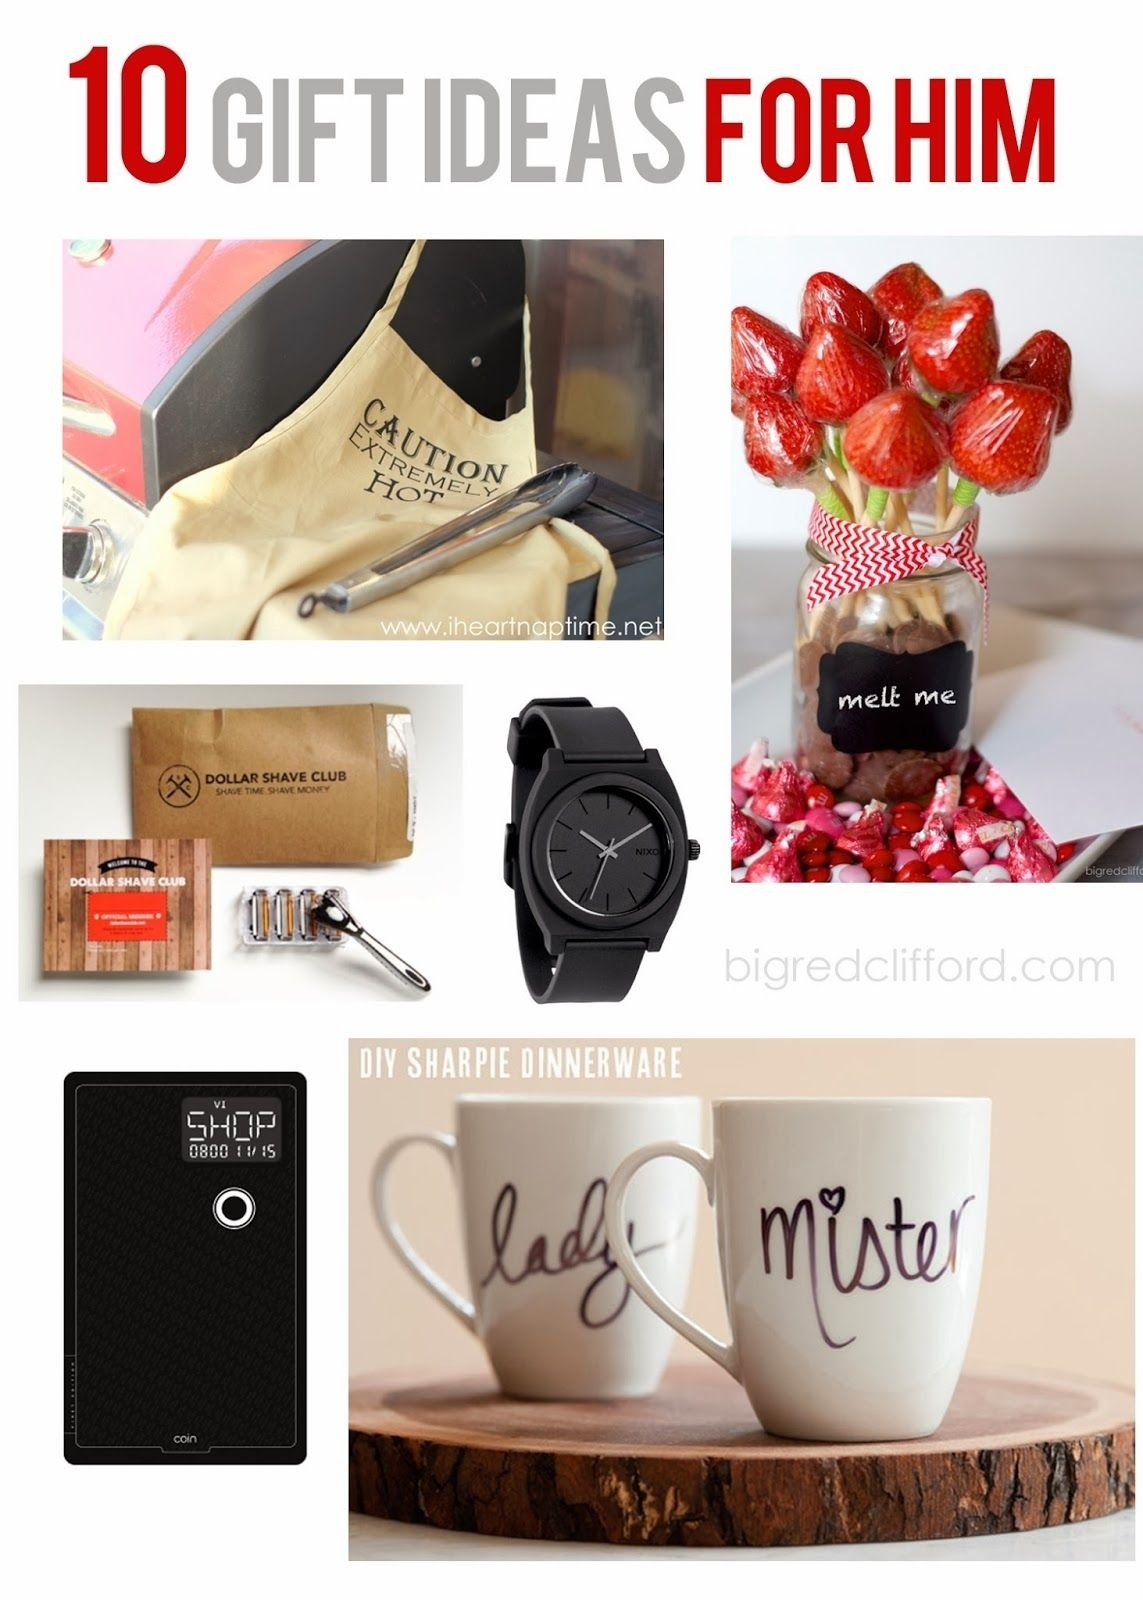 10 Lovable Small Gift Ideas For Boyfriend valentines ideas for him diy and quick amazon grabs youre 14 2020